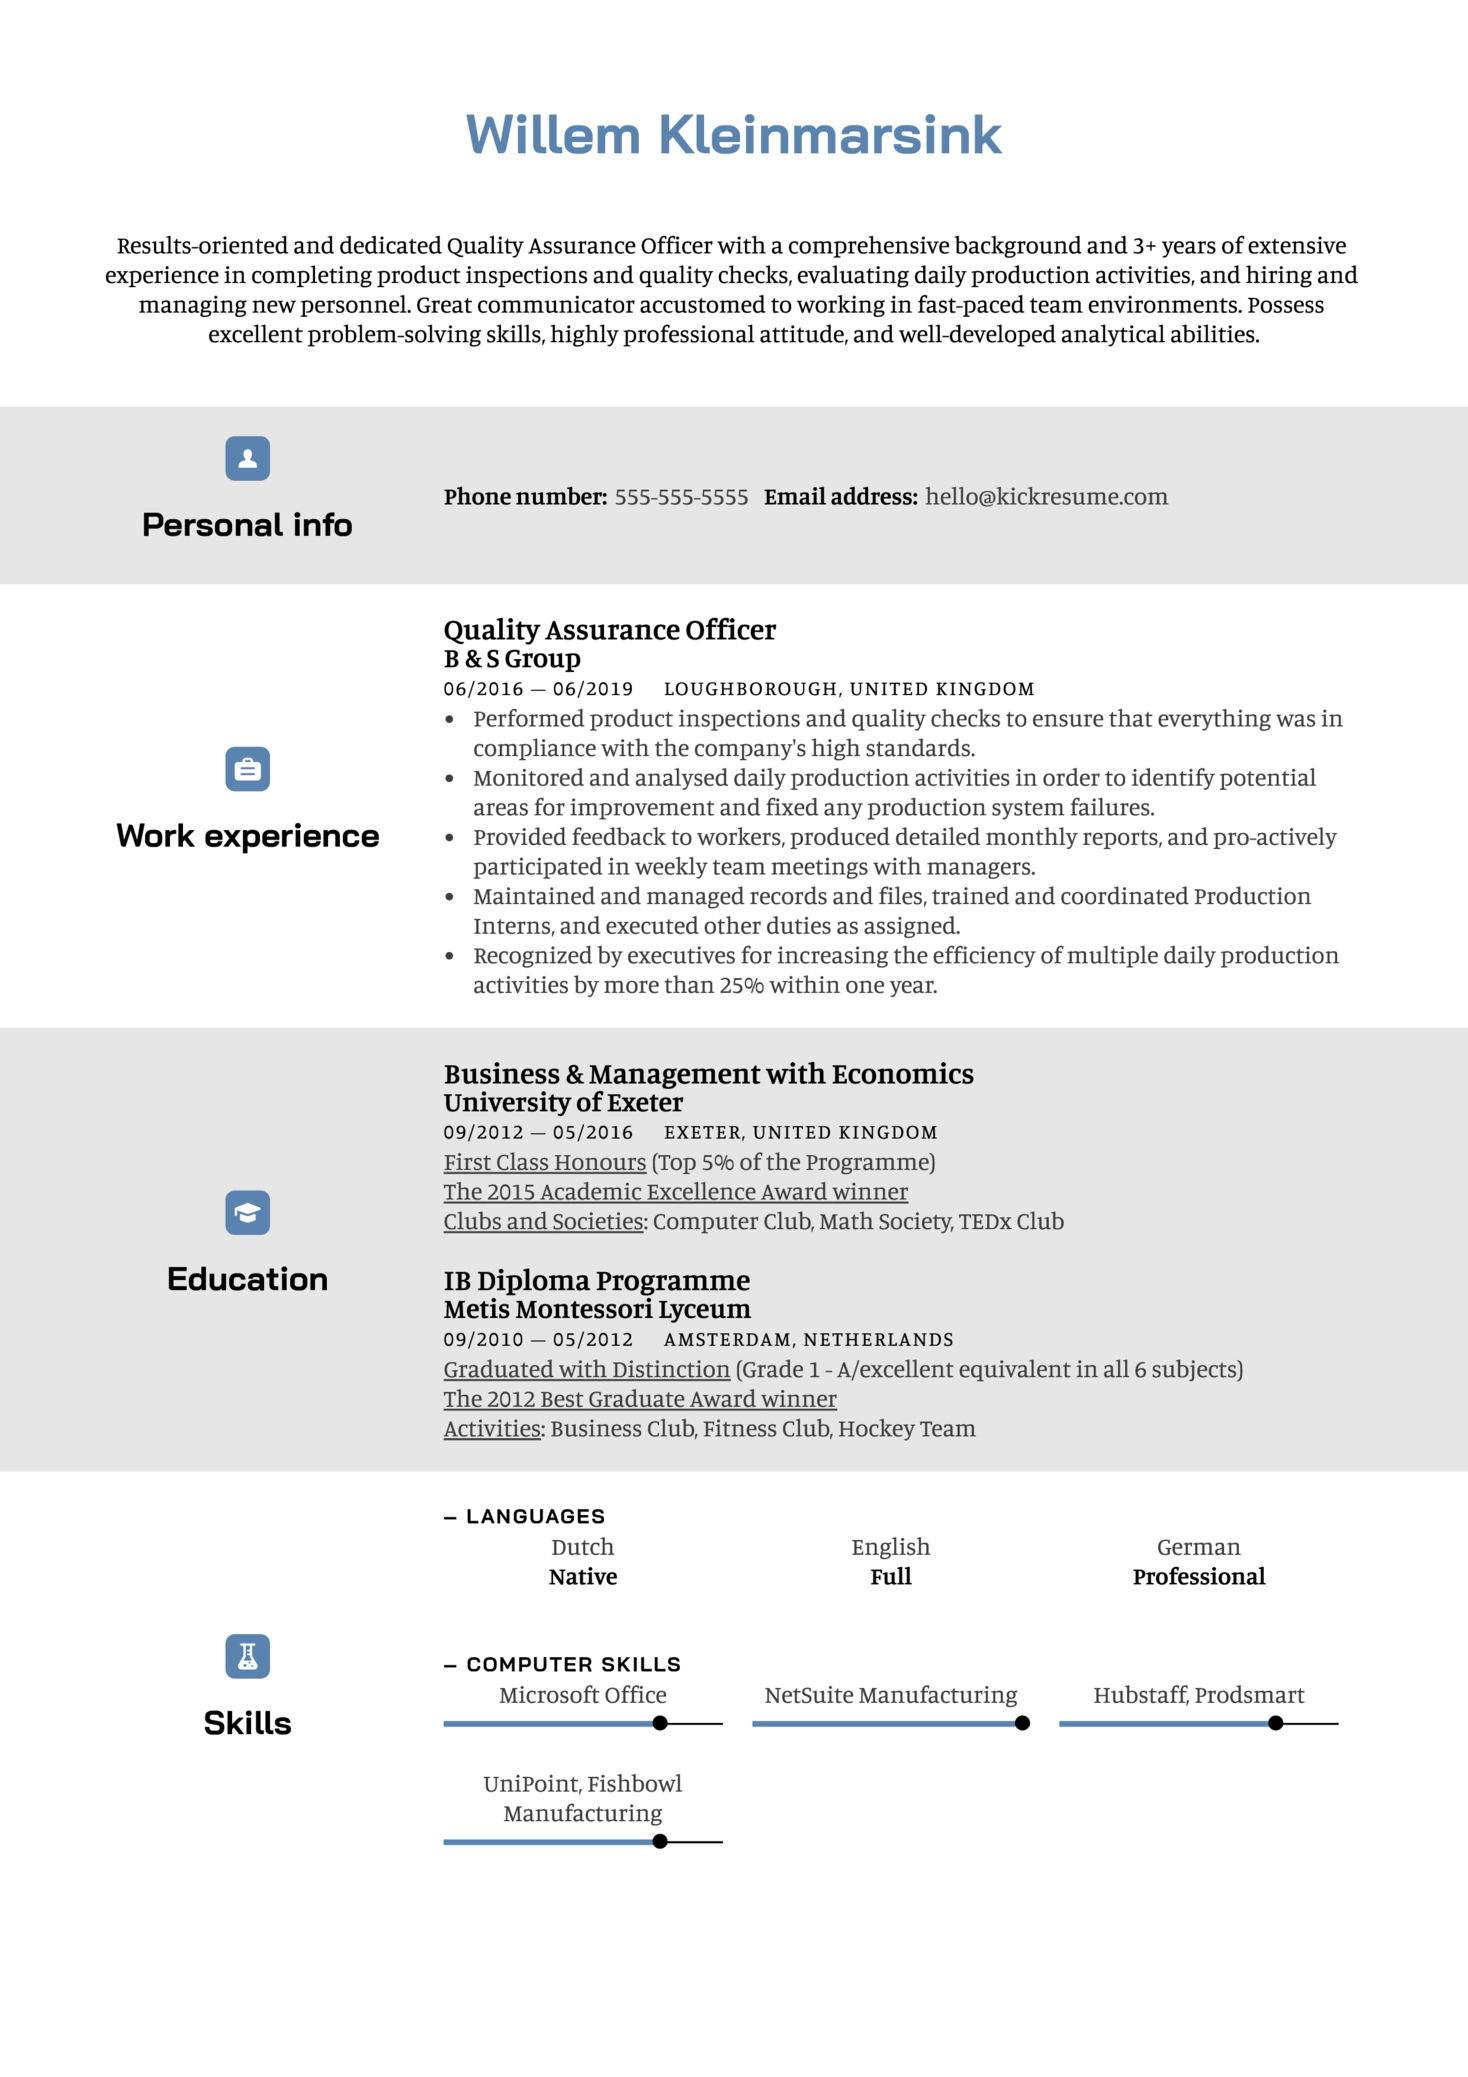 Quality Assurance Officer Resume Example Kickresume